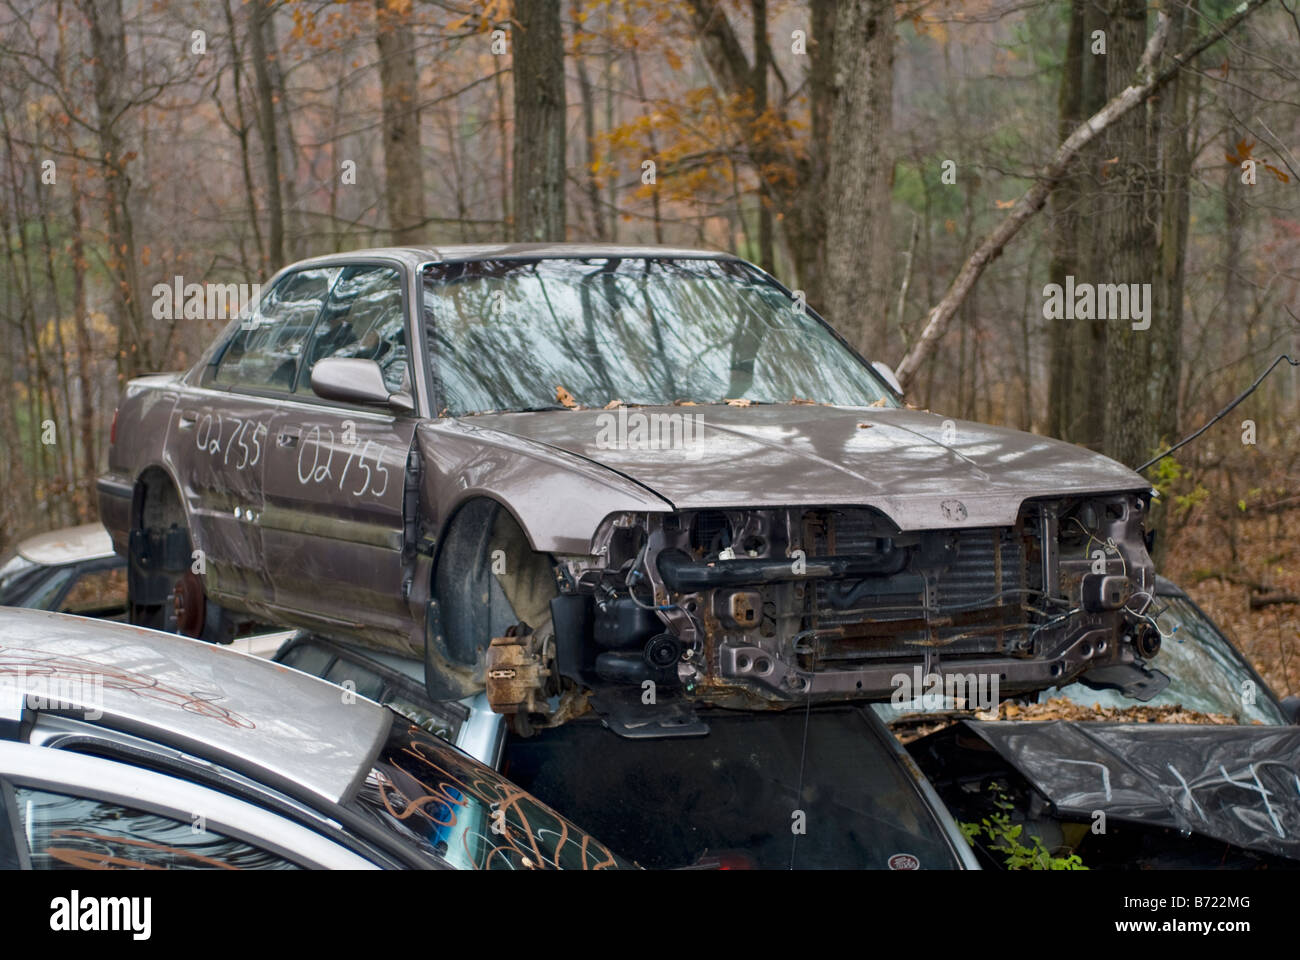 Junkyard Cars For Sale >> Automobile Junkyard With Parts Of Cars For Sale Stock Photo